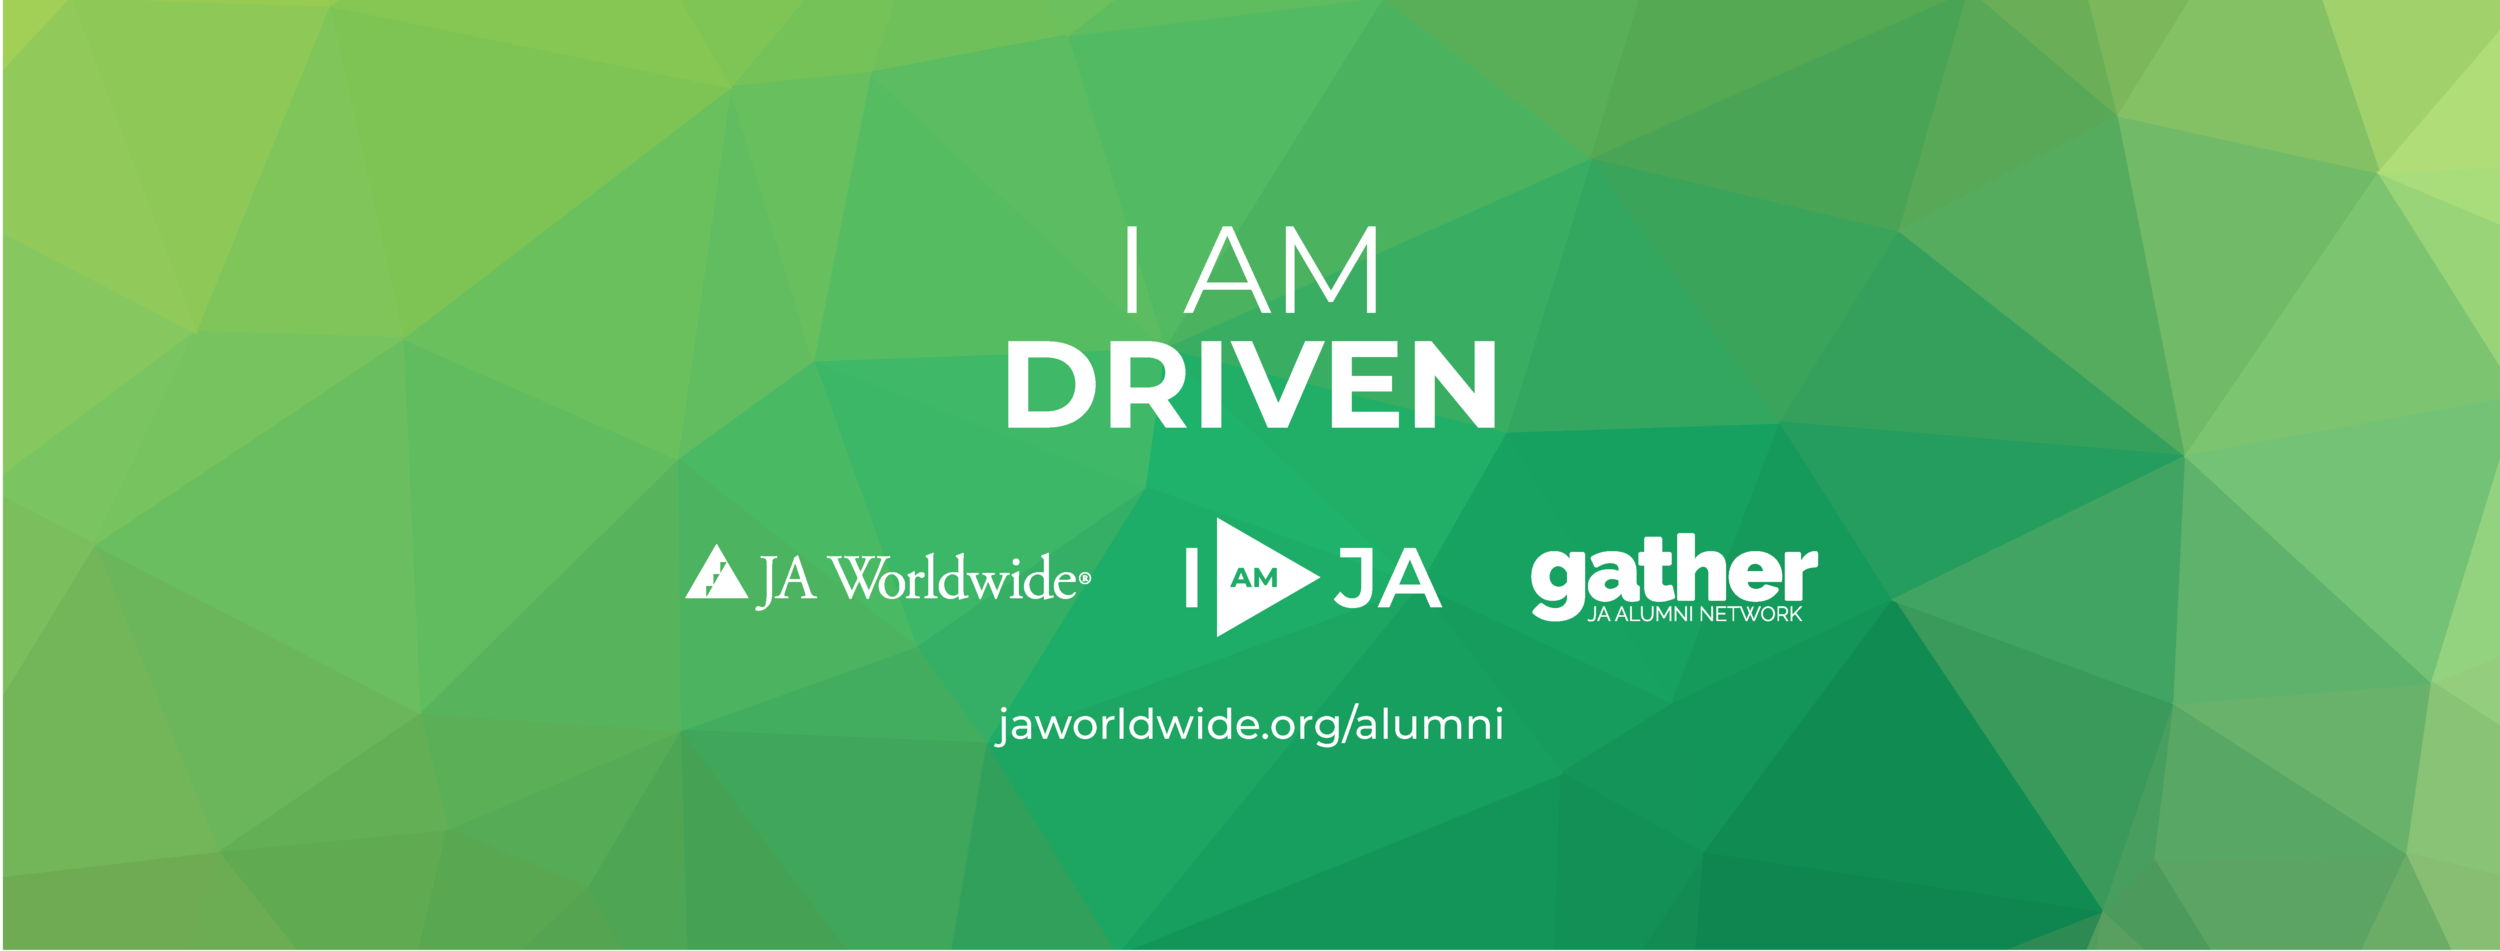 I am driven-I am JA-Facebook banner.png